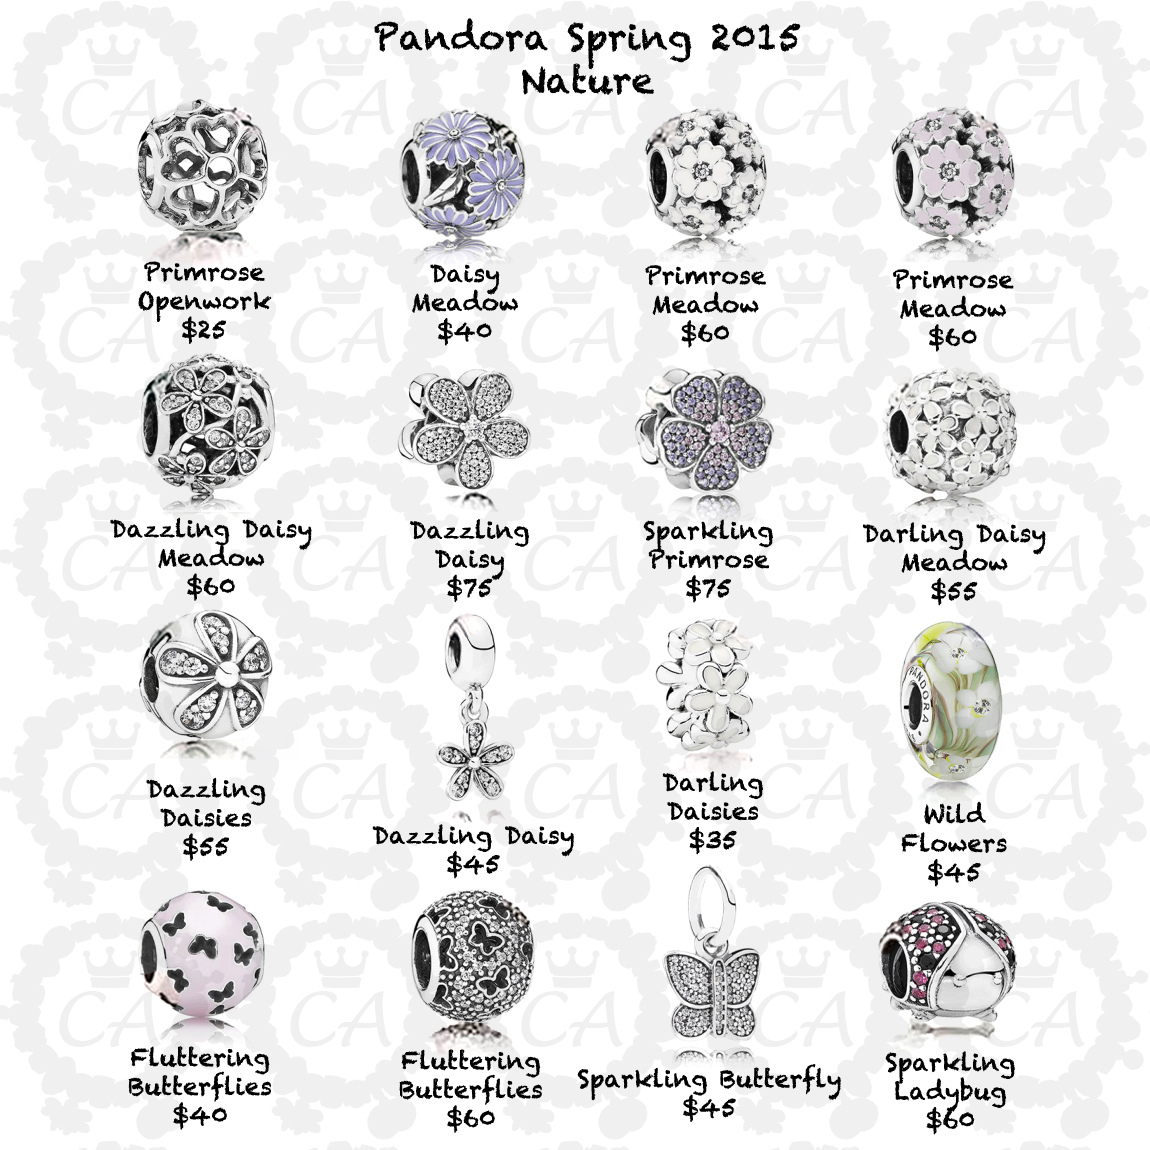 Pandora Spring 2015 Comprehensive Preview And Prices